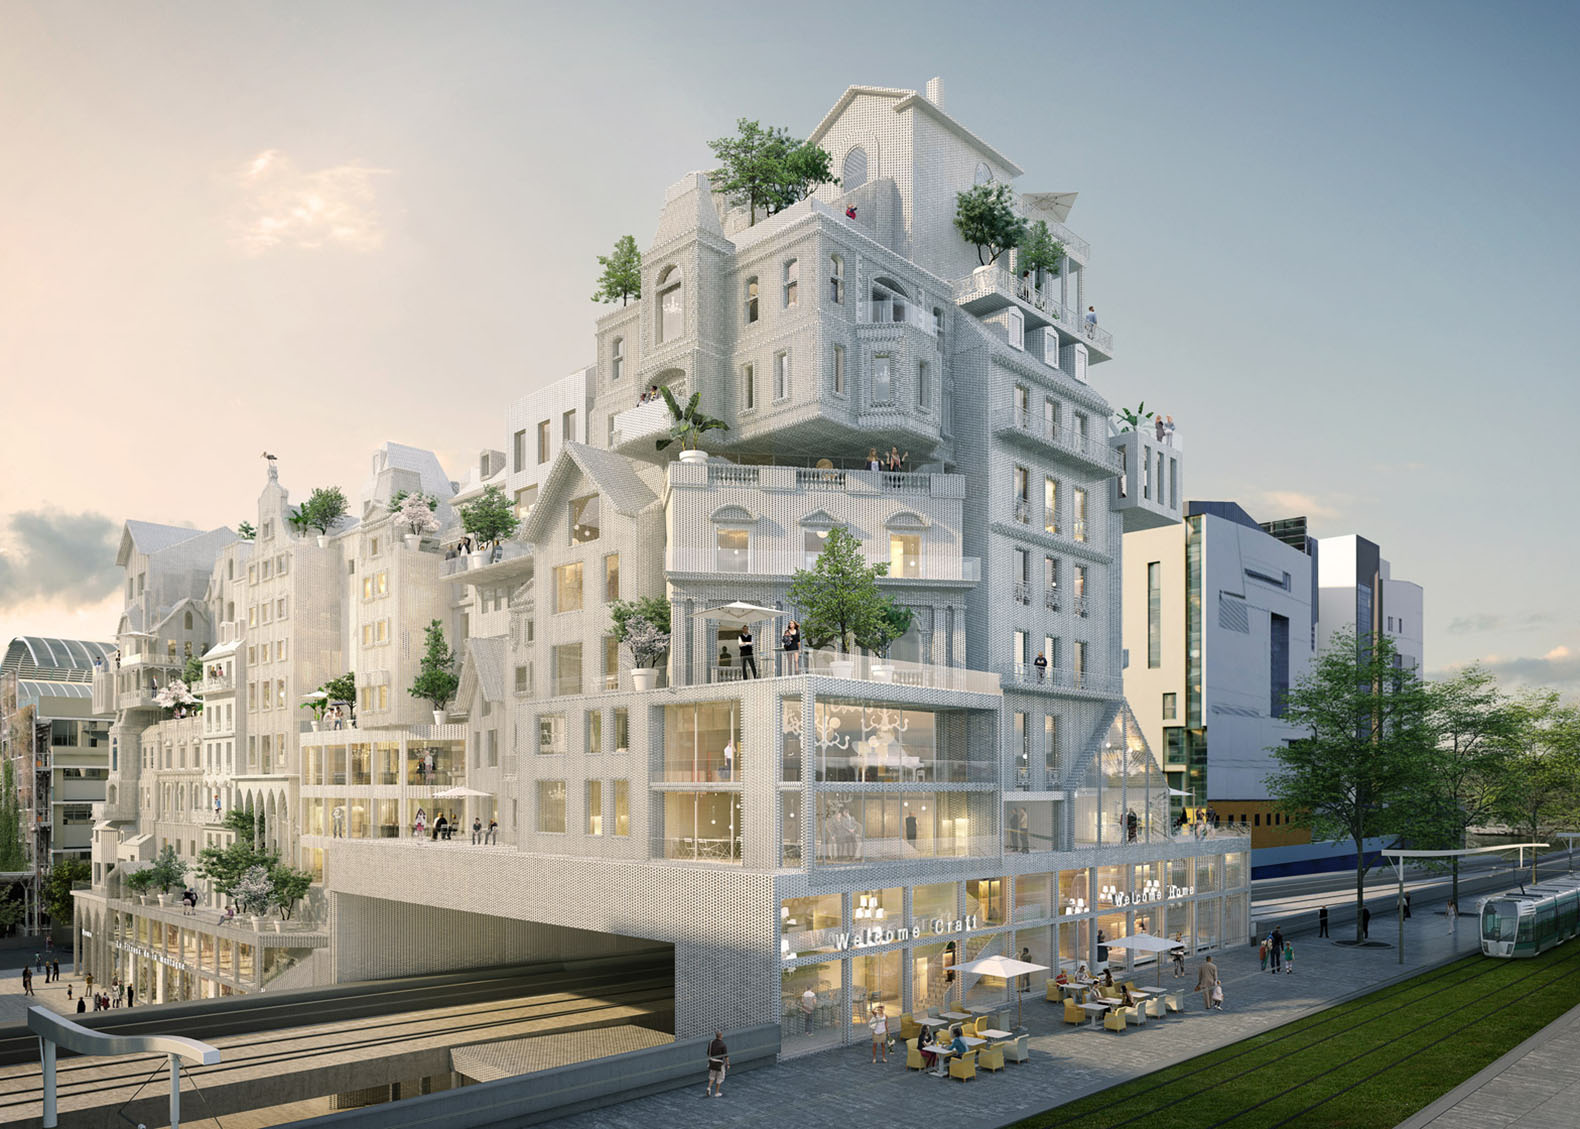 P riph riques 39 affordable housing proposal reinvents paris through crowd building inhabitat - Innovative ideas in apartments ...